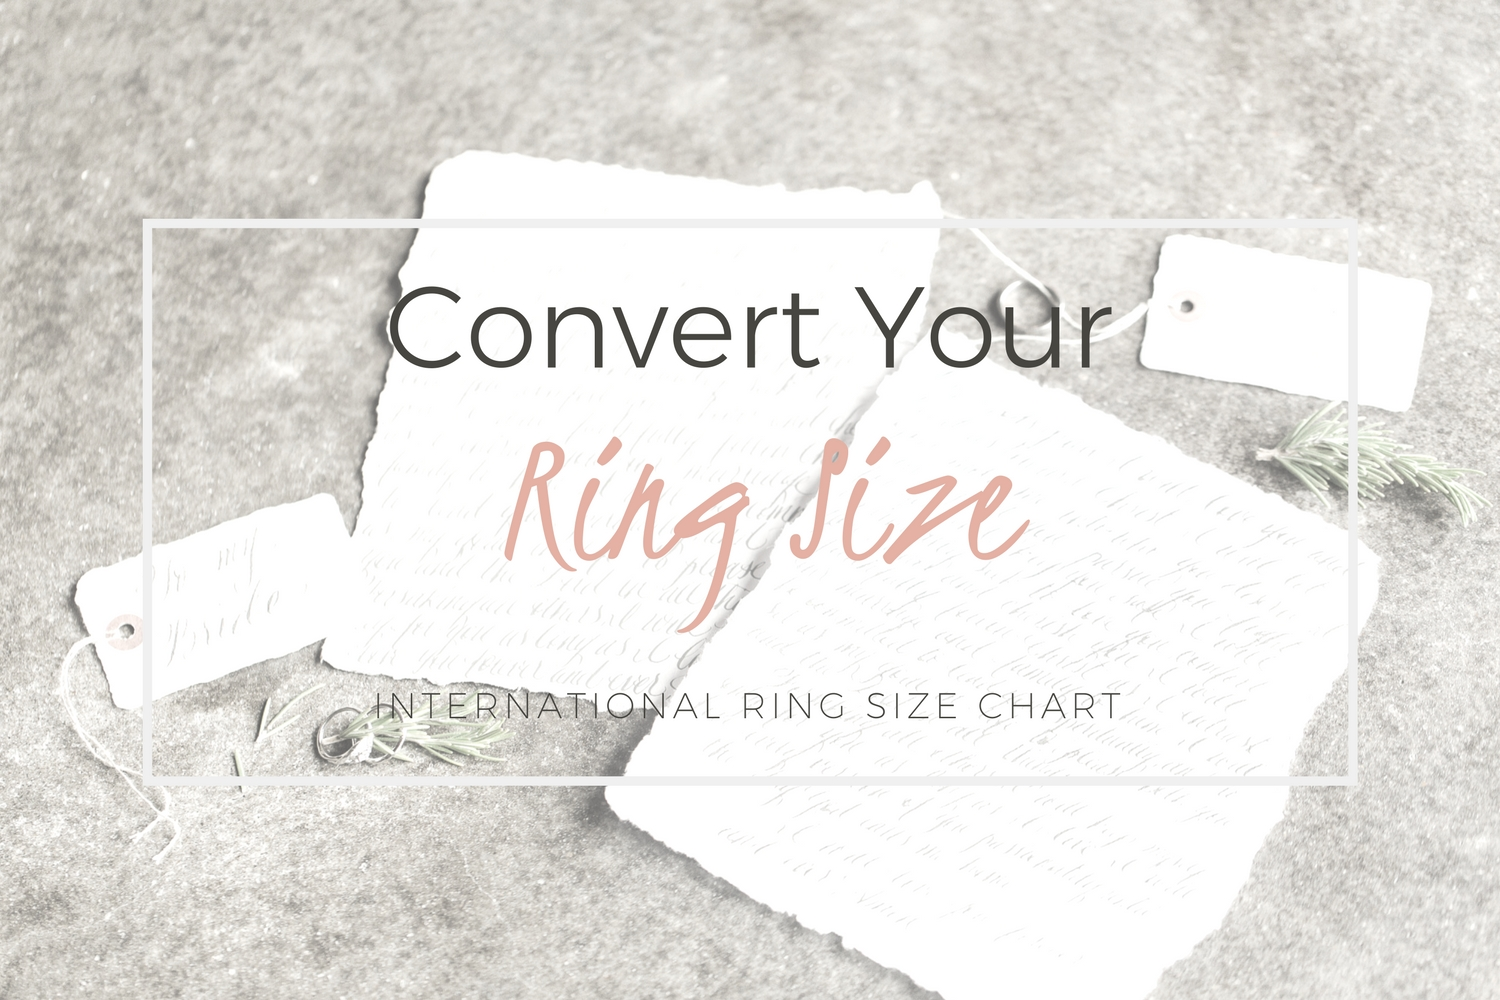 Convert Your Ring Size | International Ring Size Conversion Chart